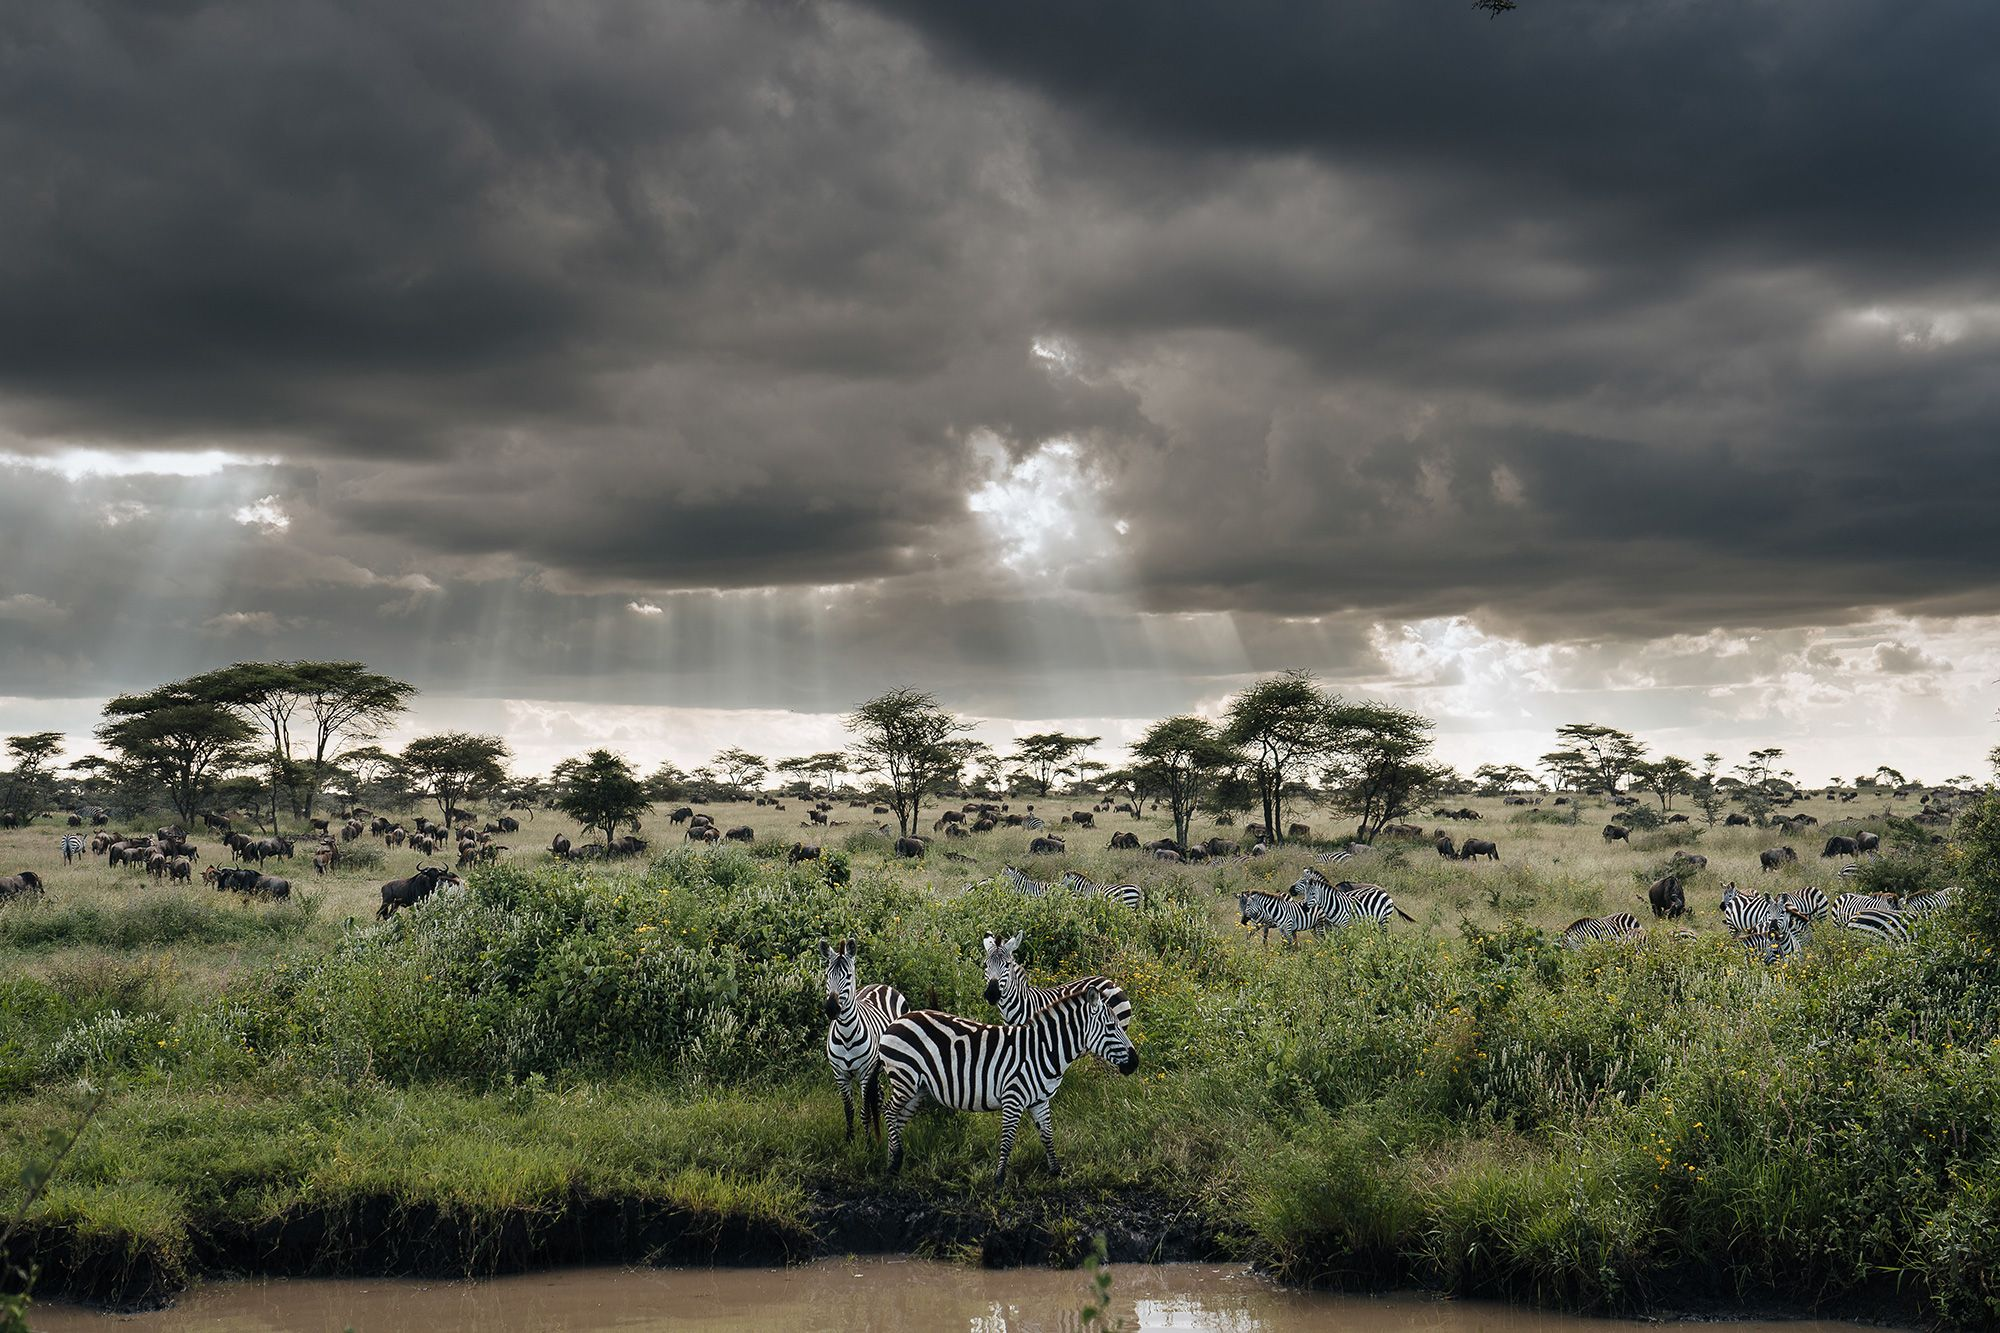 Zebras gathering by drinking pool © Chris Schmid